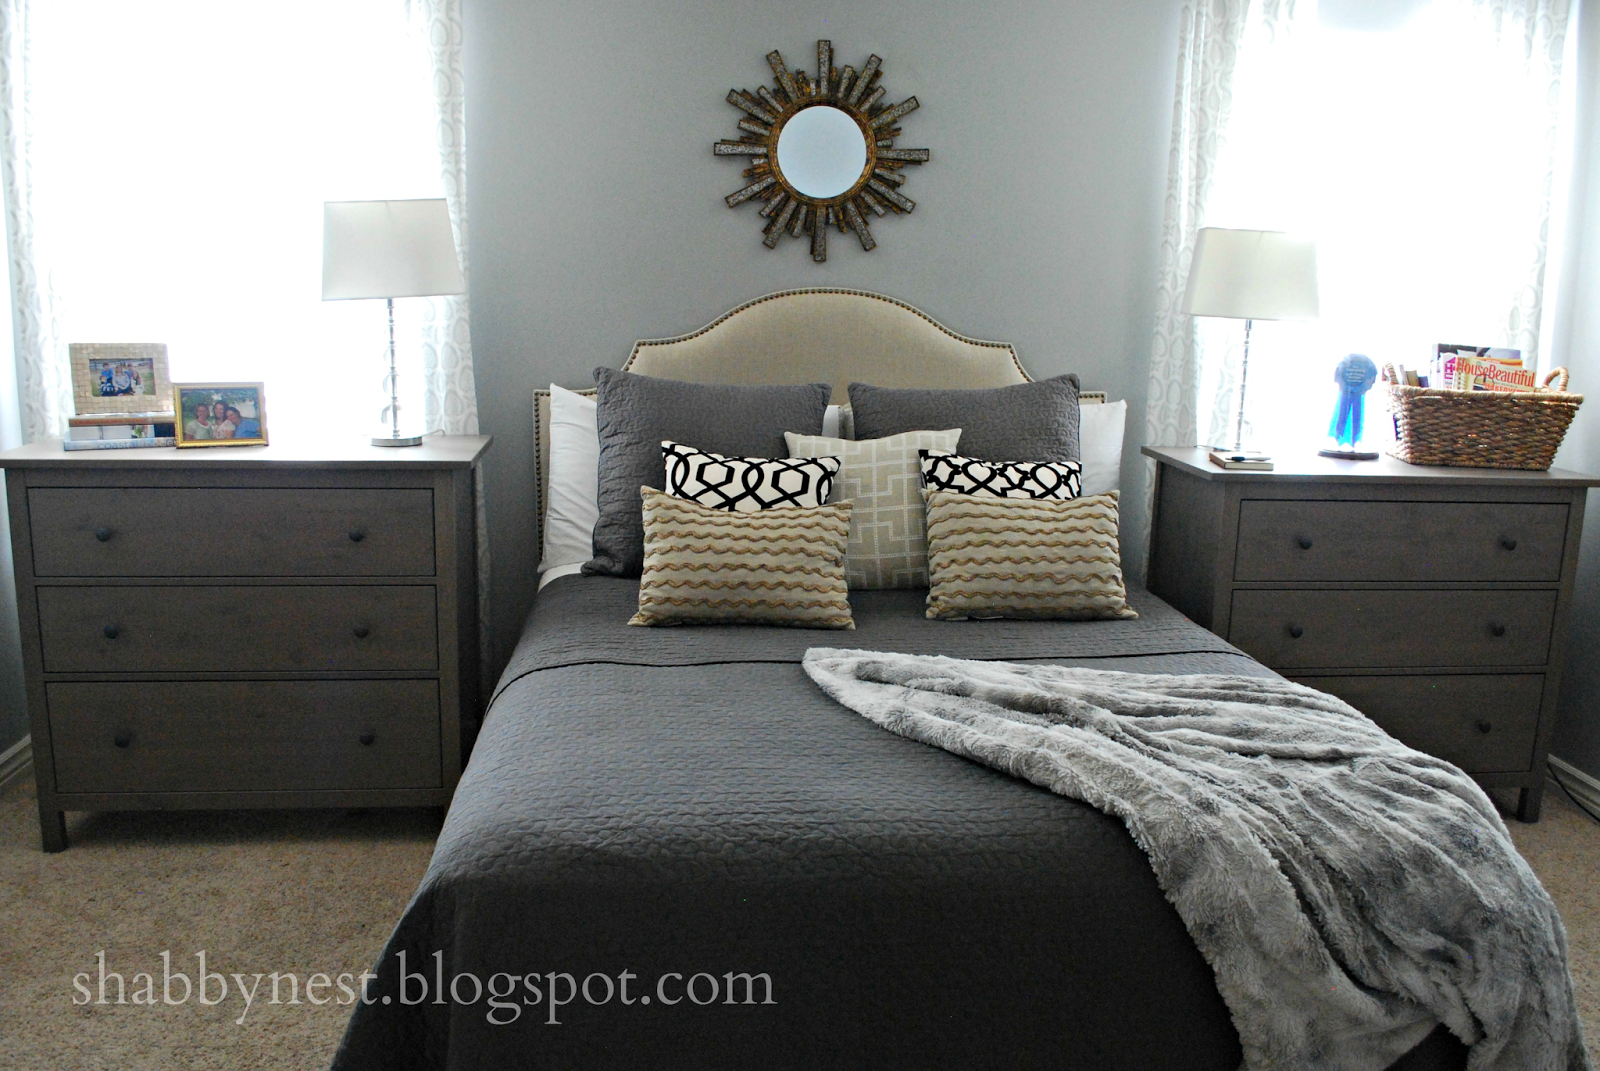 The Shabby Nest Using Dressers as Nightstands